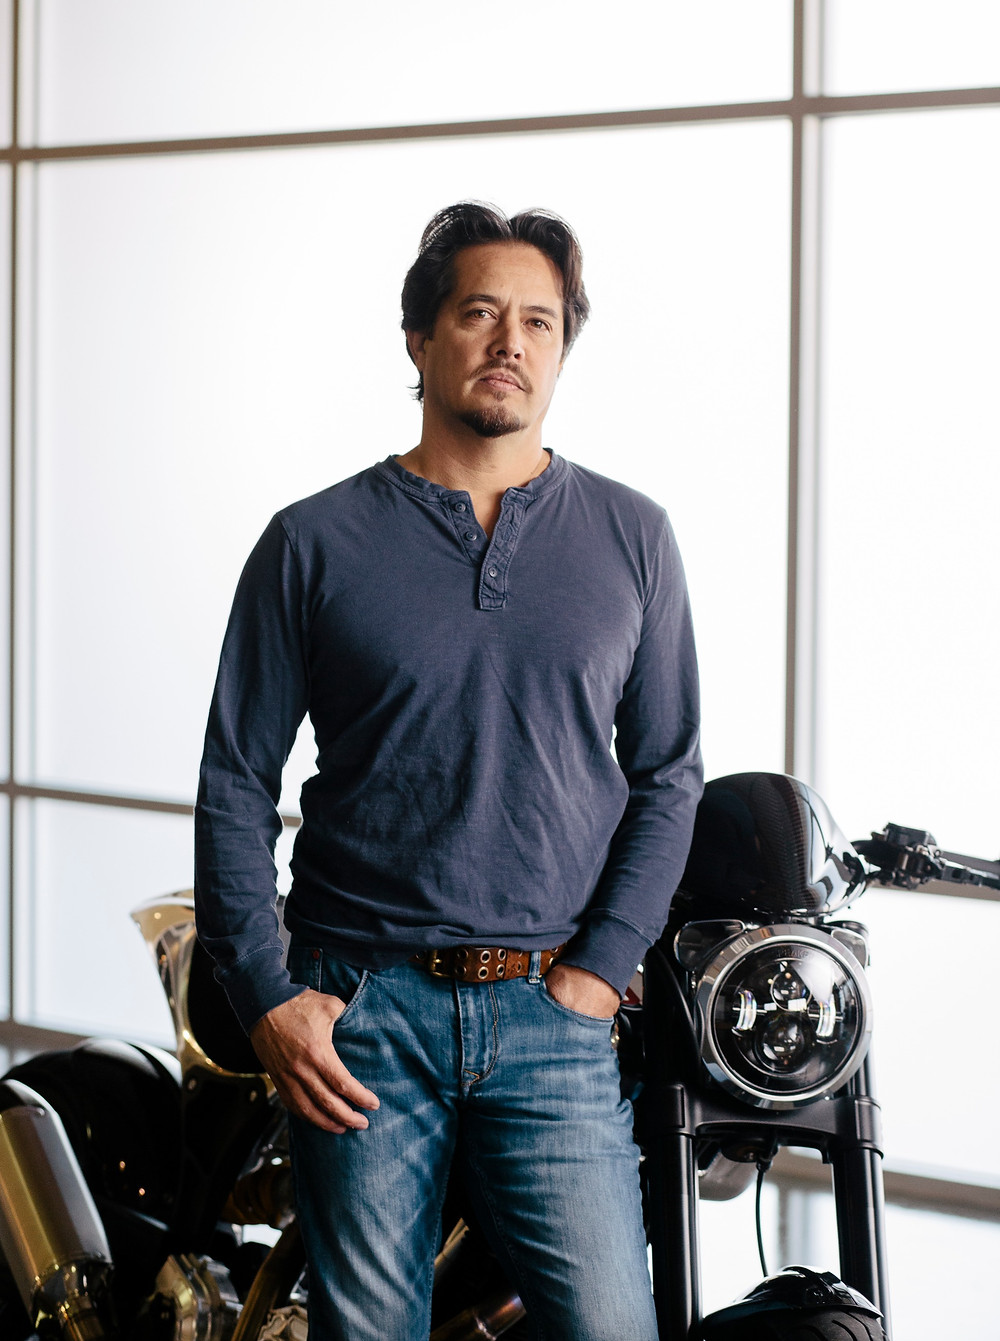 Gard Hollinger talks Art, Ambition, and Arch Motorcycle | Gard Hollinger, courtesy of Arch Motorcycle